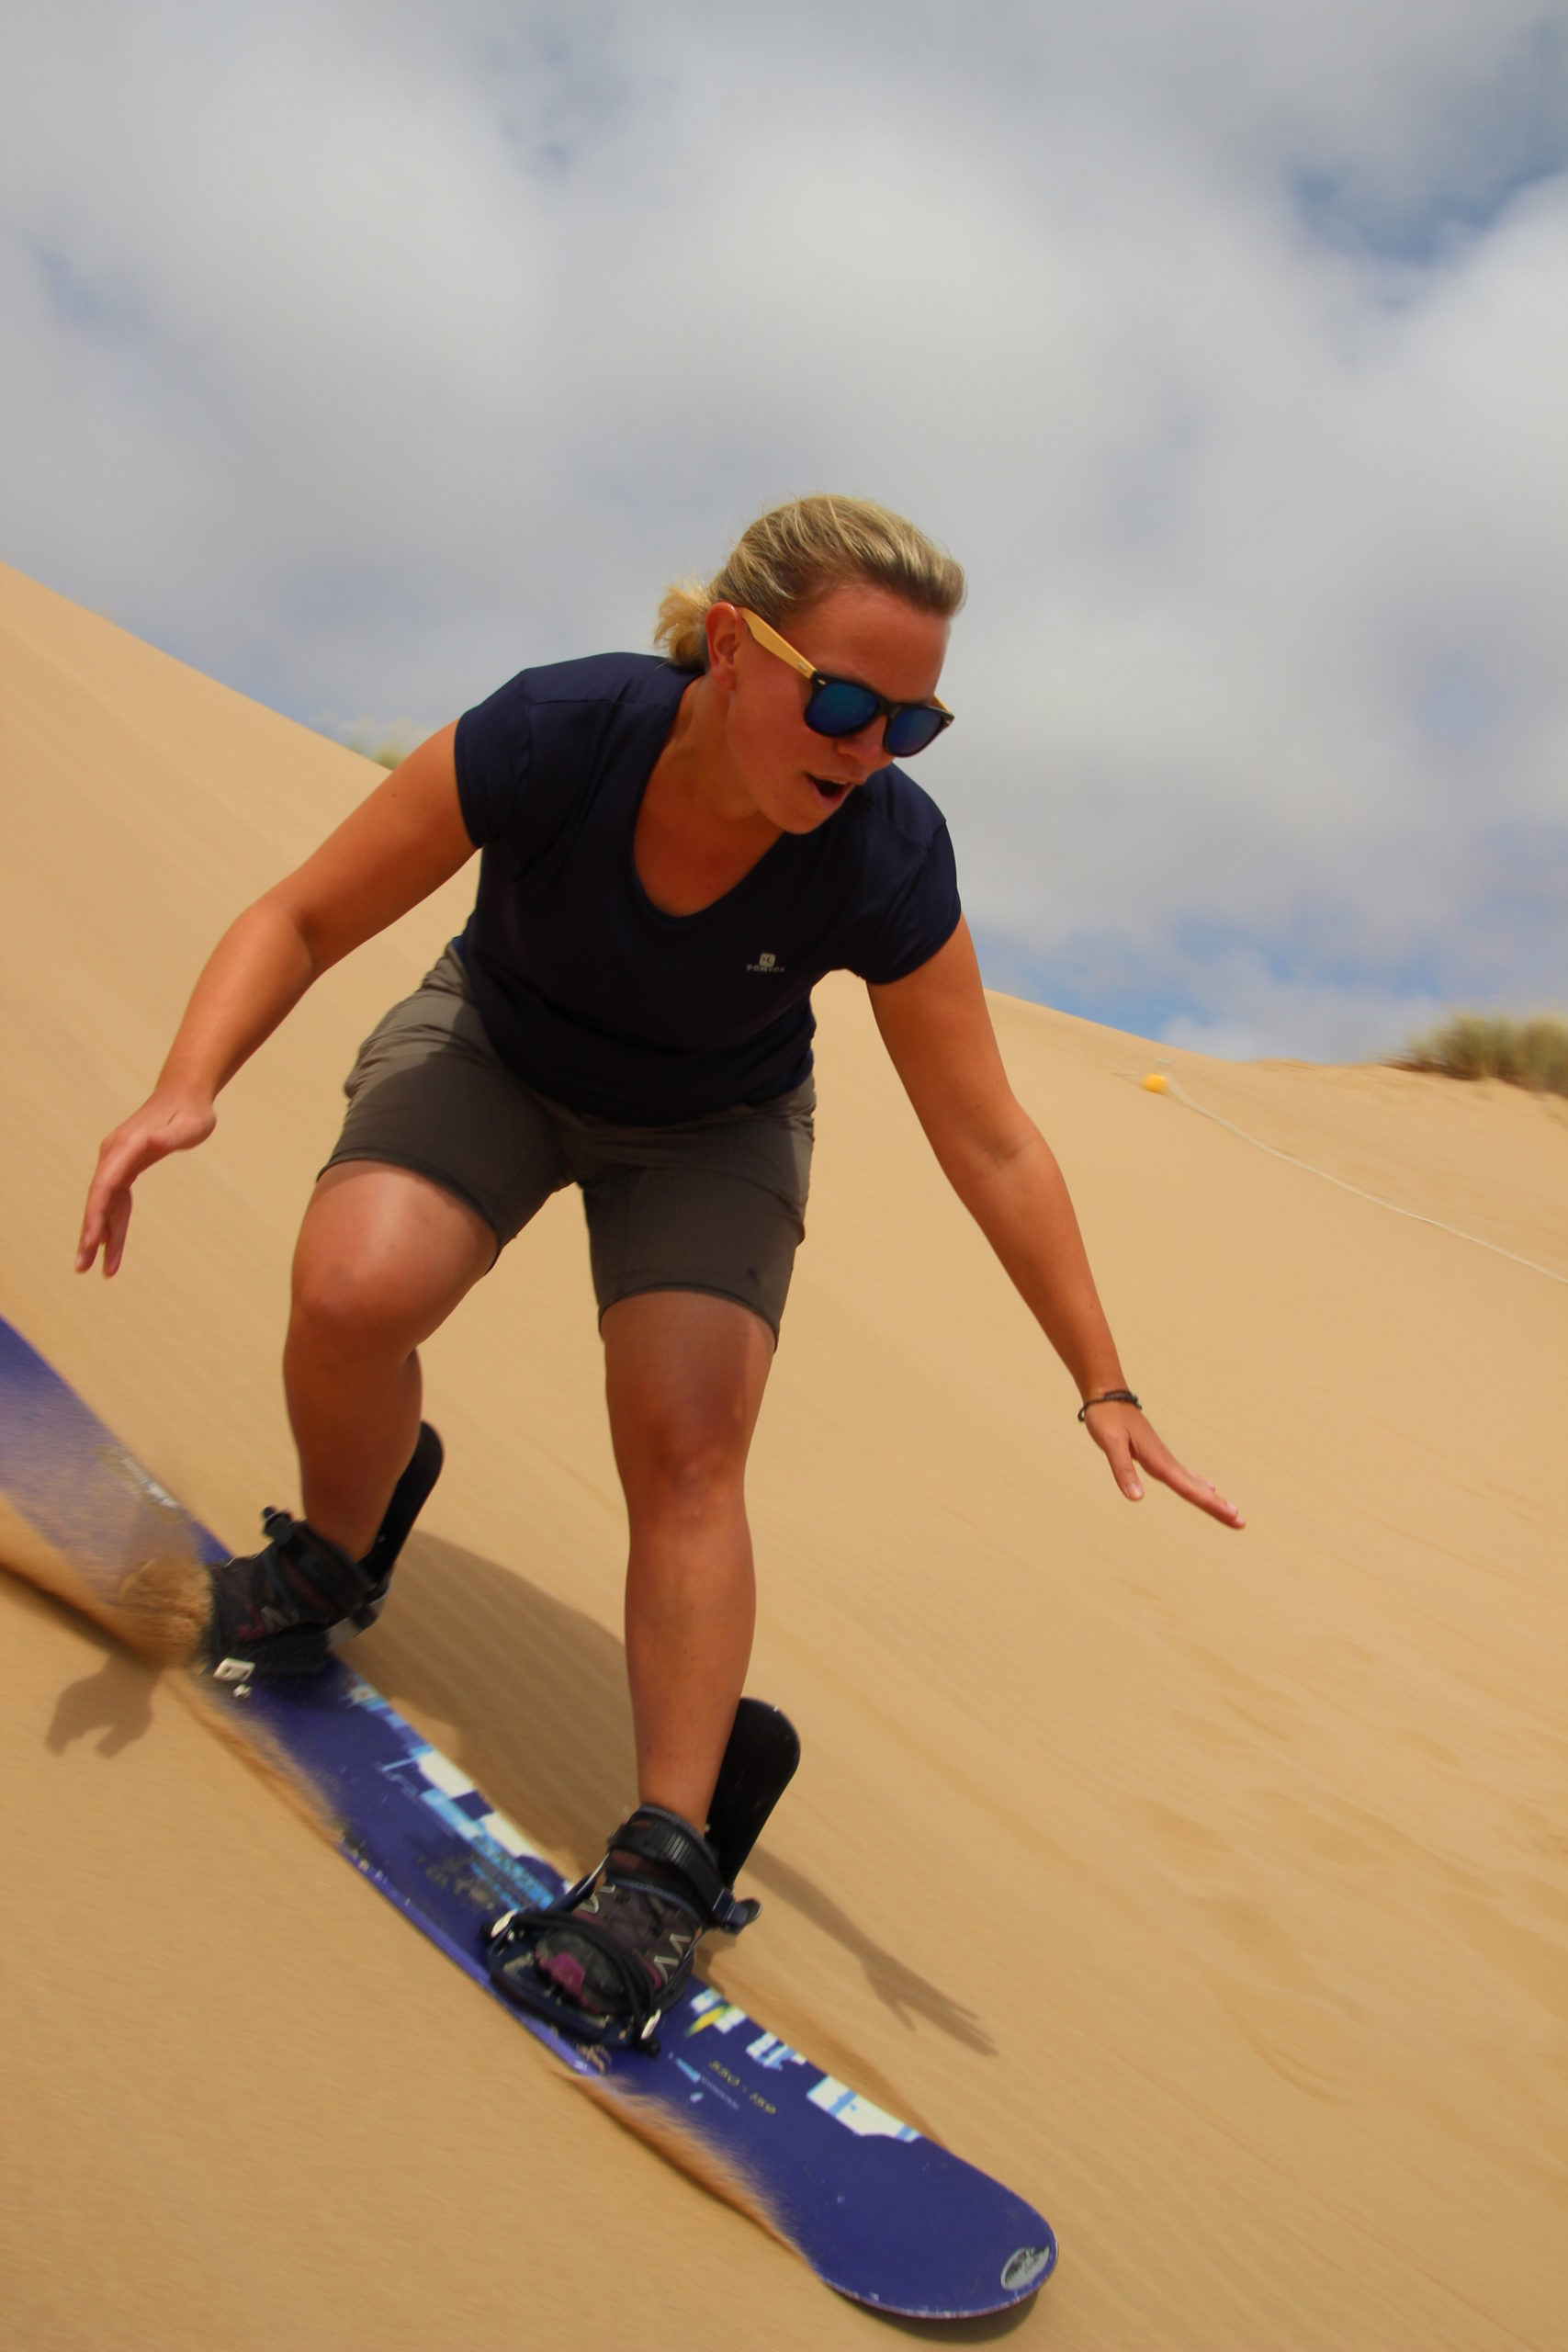 Ricarda tried sandboarding for the first time in South Africa